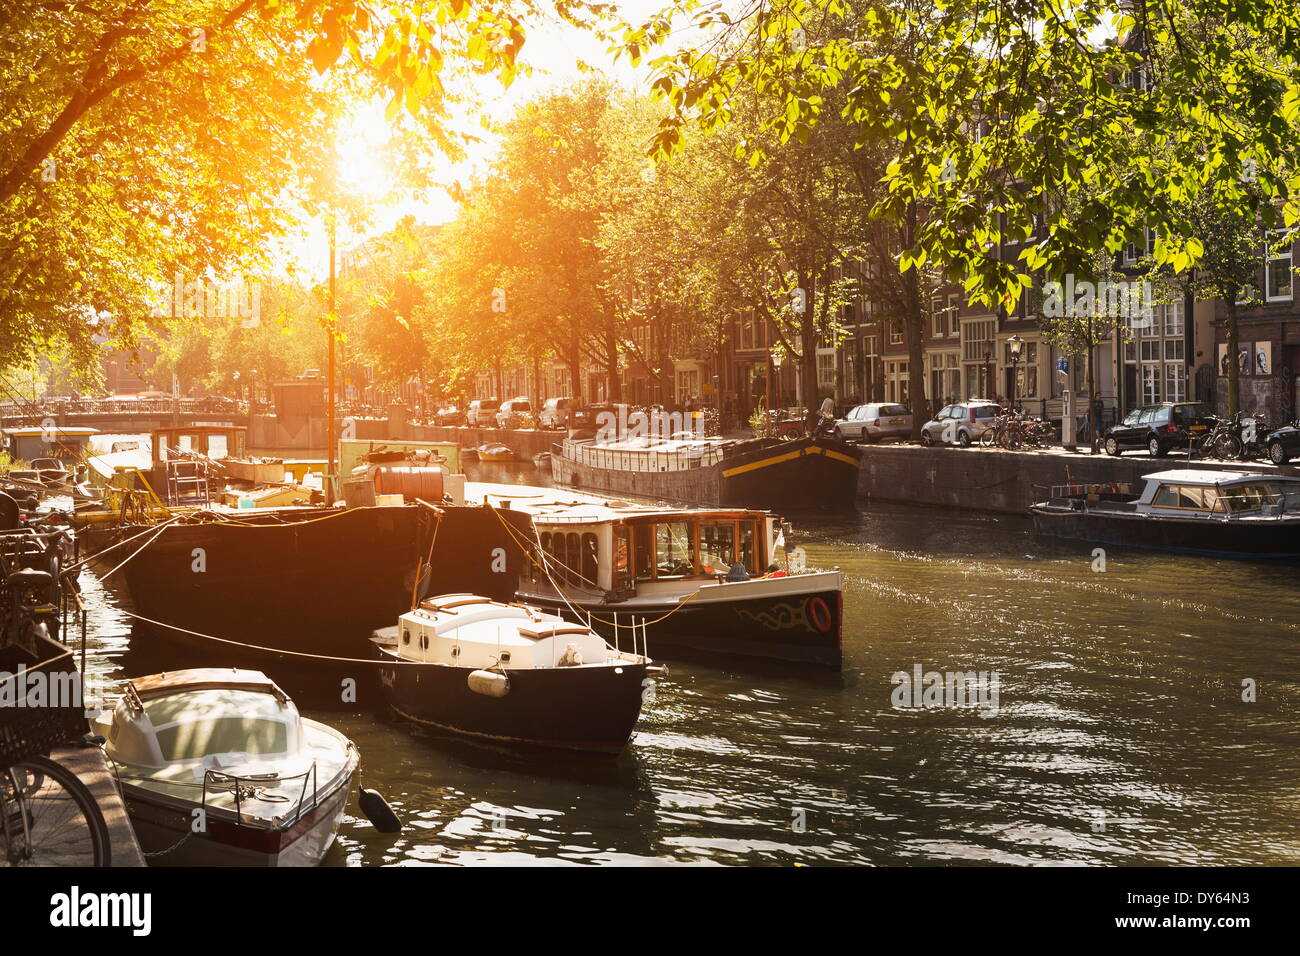 Canal soleil, Amsterdam, Pays-Bas, Europe Photo Stock